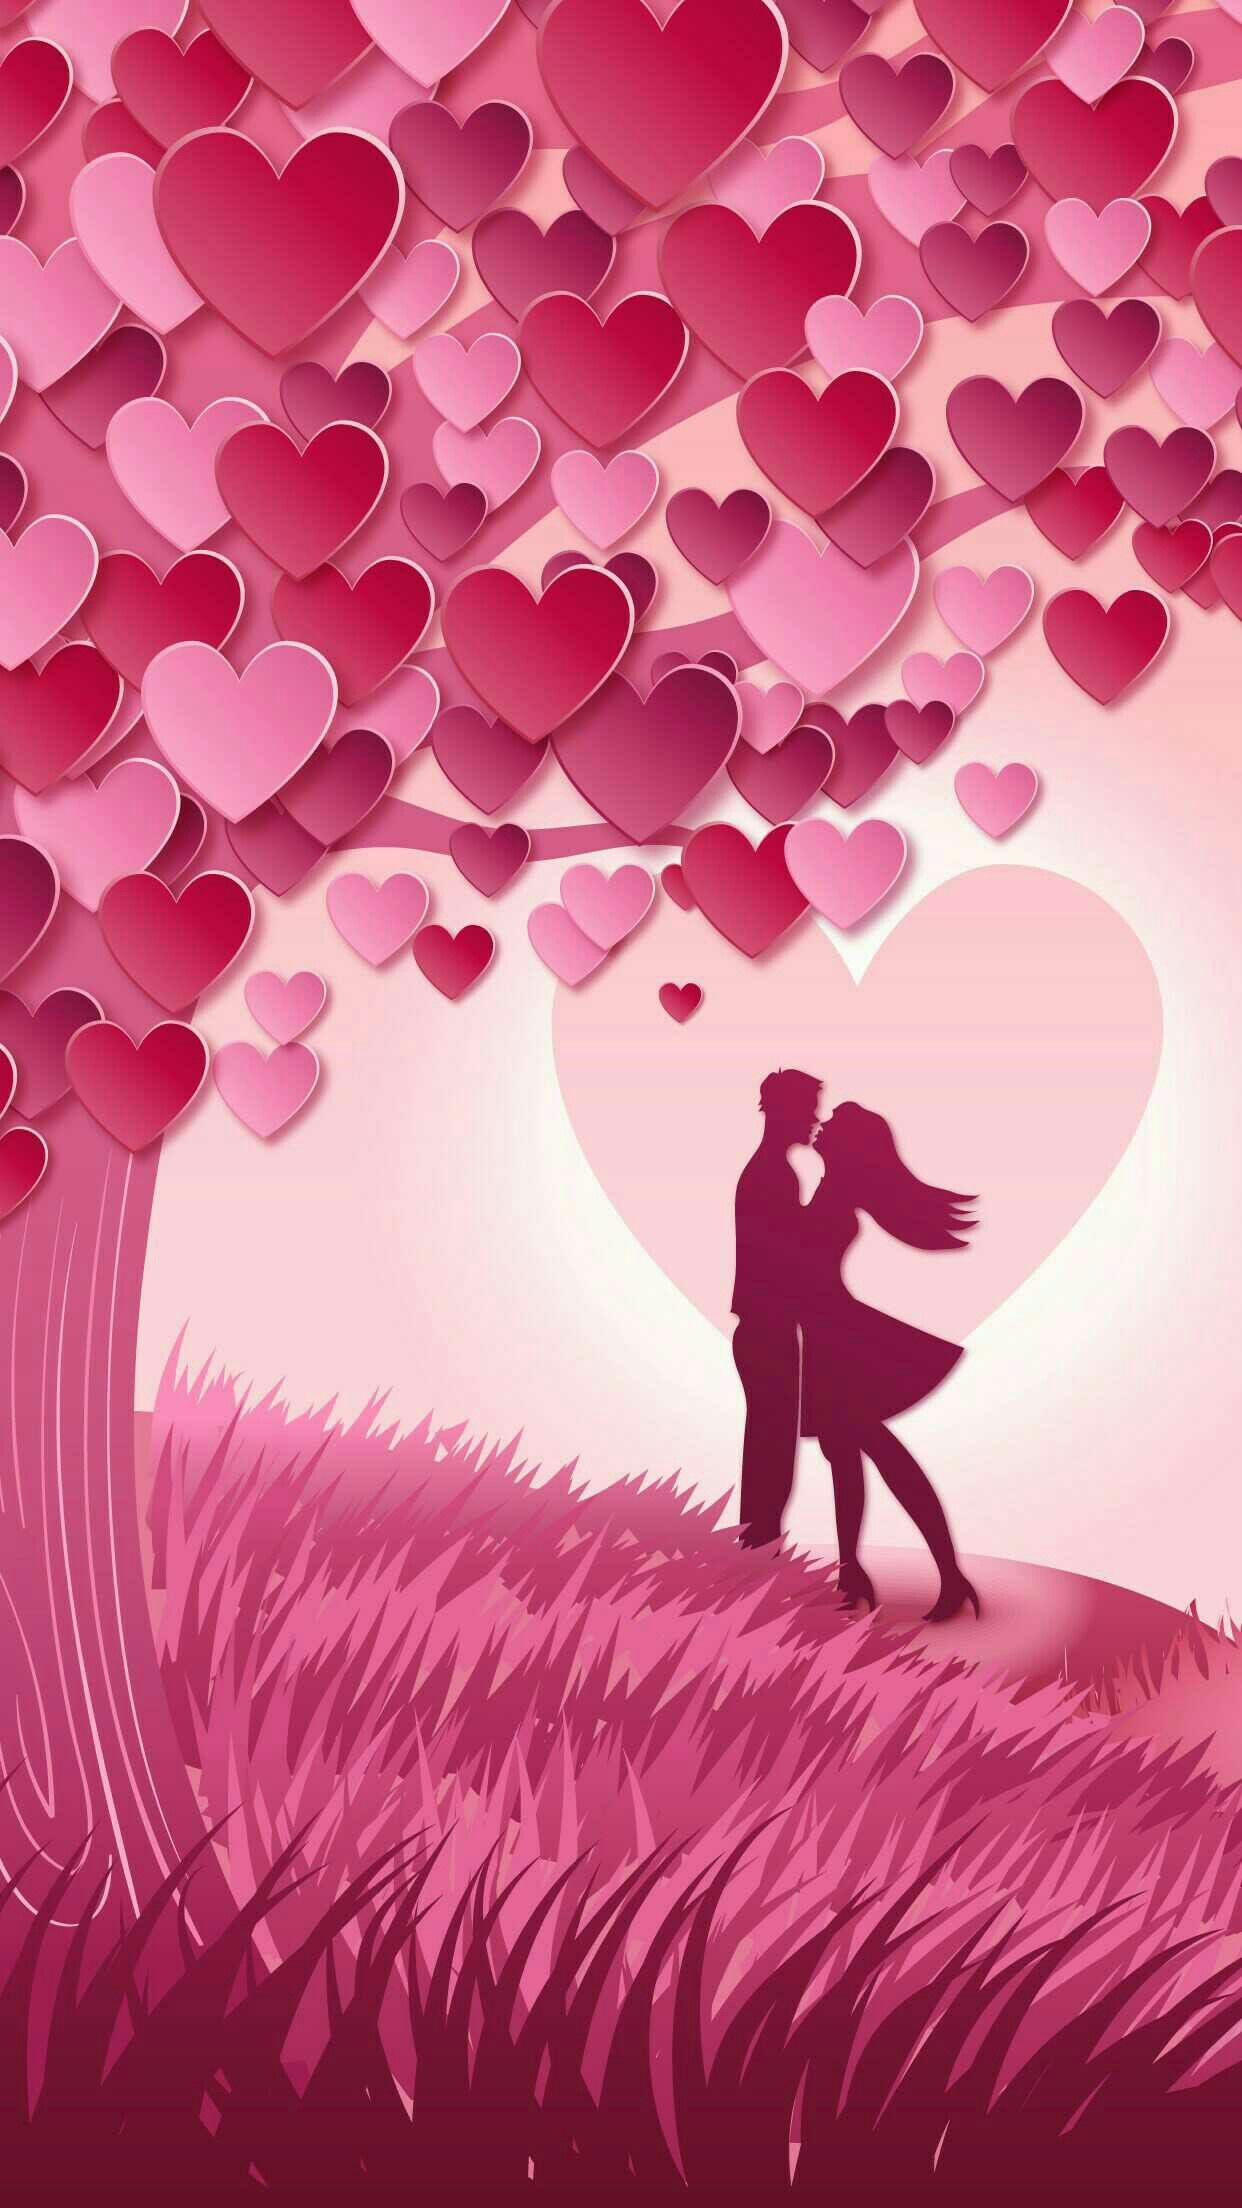 Pink Heart Tree Lovers Wallpaper วอลเปเปอร วอลเปเปอร โทรศ พท